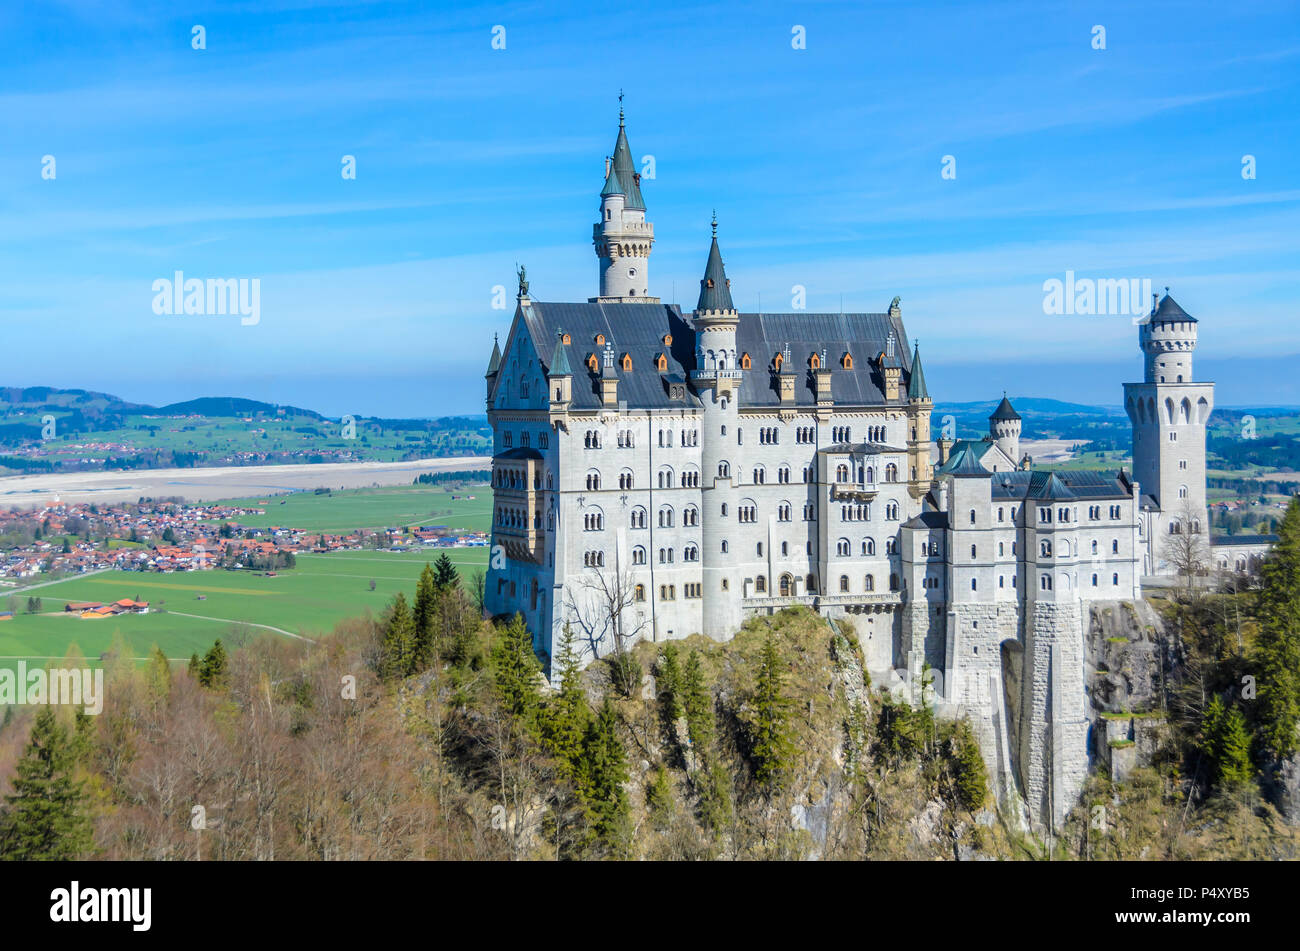 Neuschwanstein Castle, the nineteenth-century Romanesque Revival palace built for King Ludwig II on a rugged cliff near Fussen, Bavaria, Germany - Stock Image